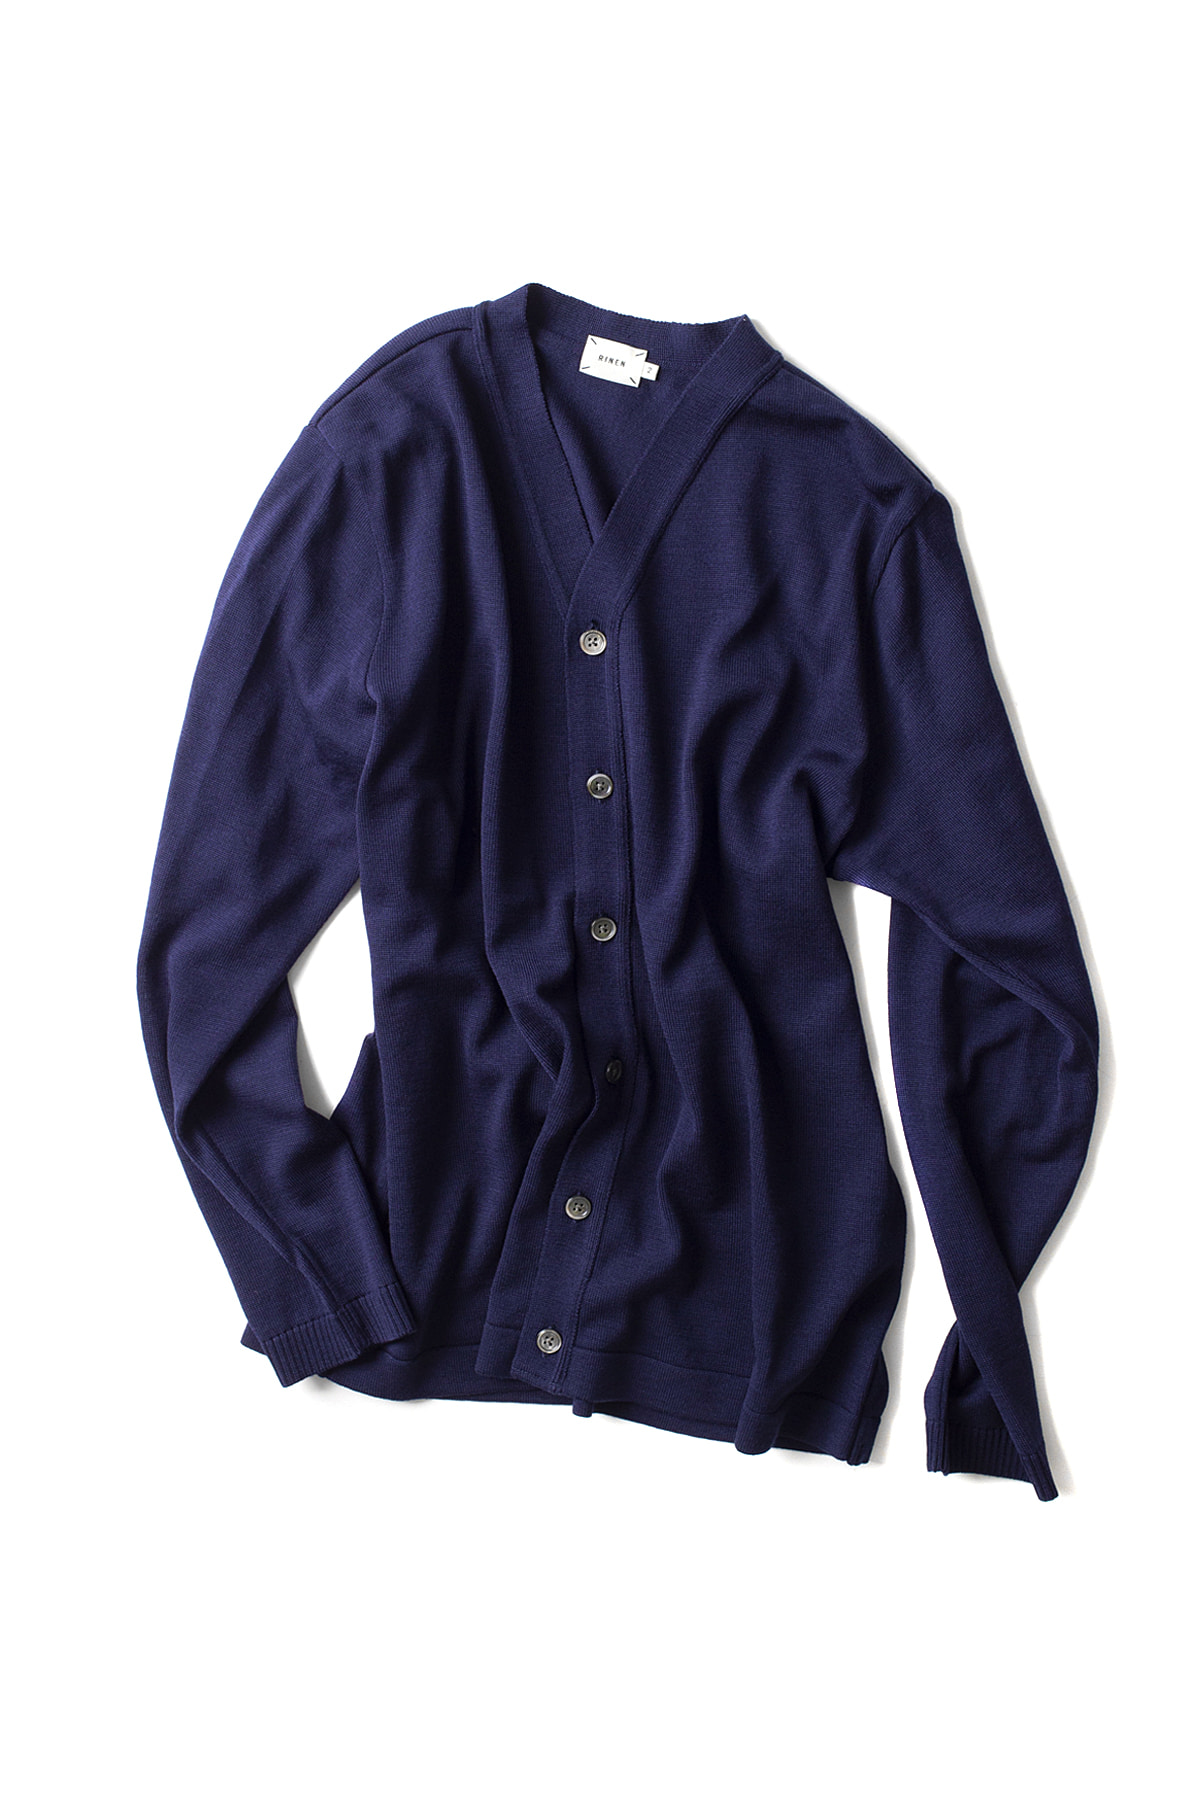 RINEN : Wool Knit Cardigan 13982 (Navy)